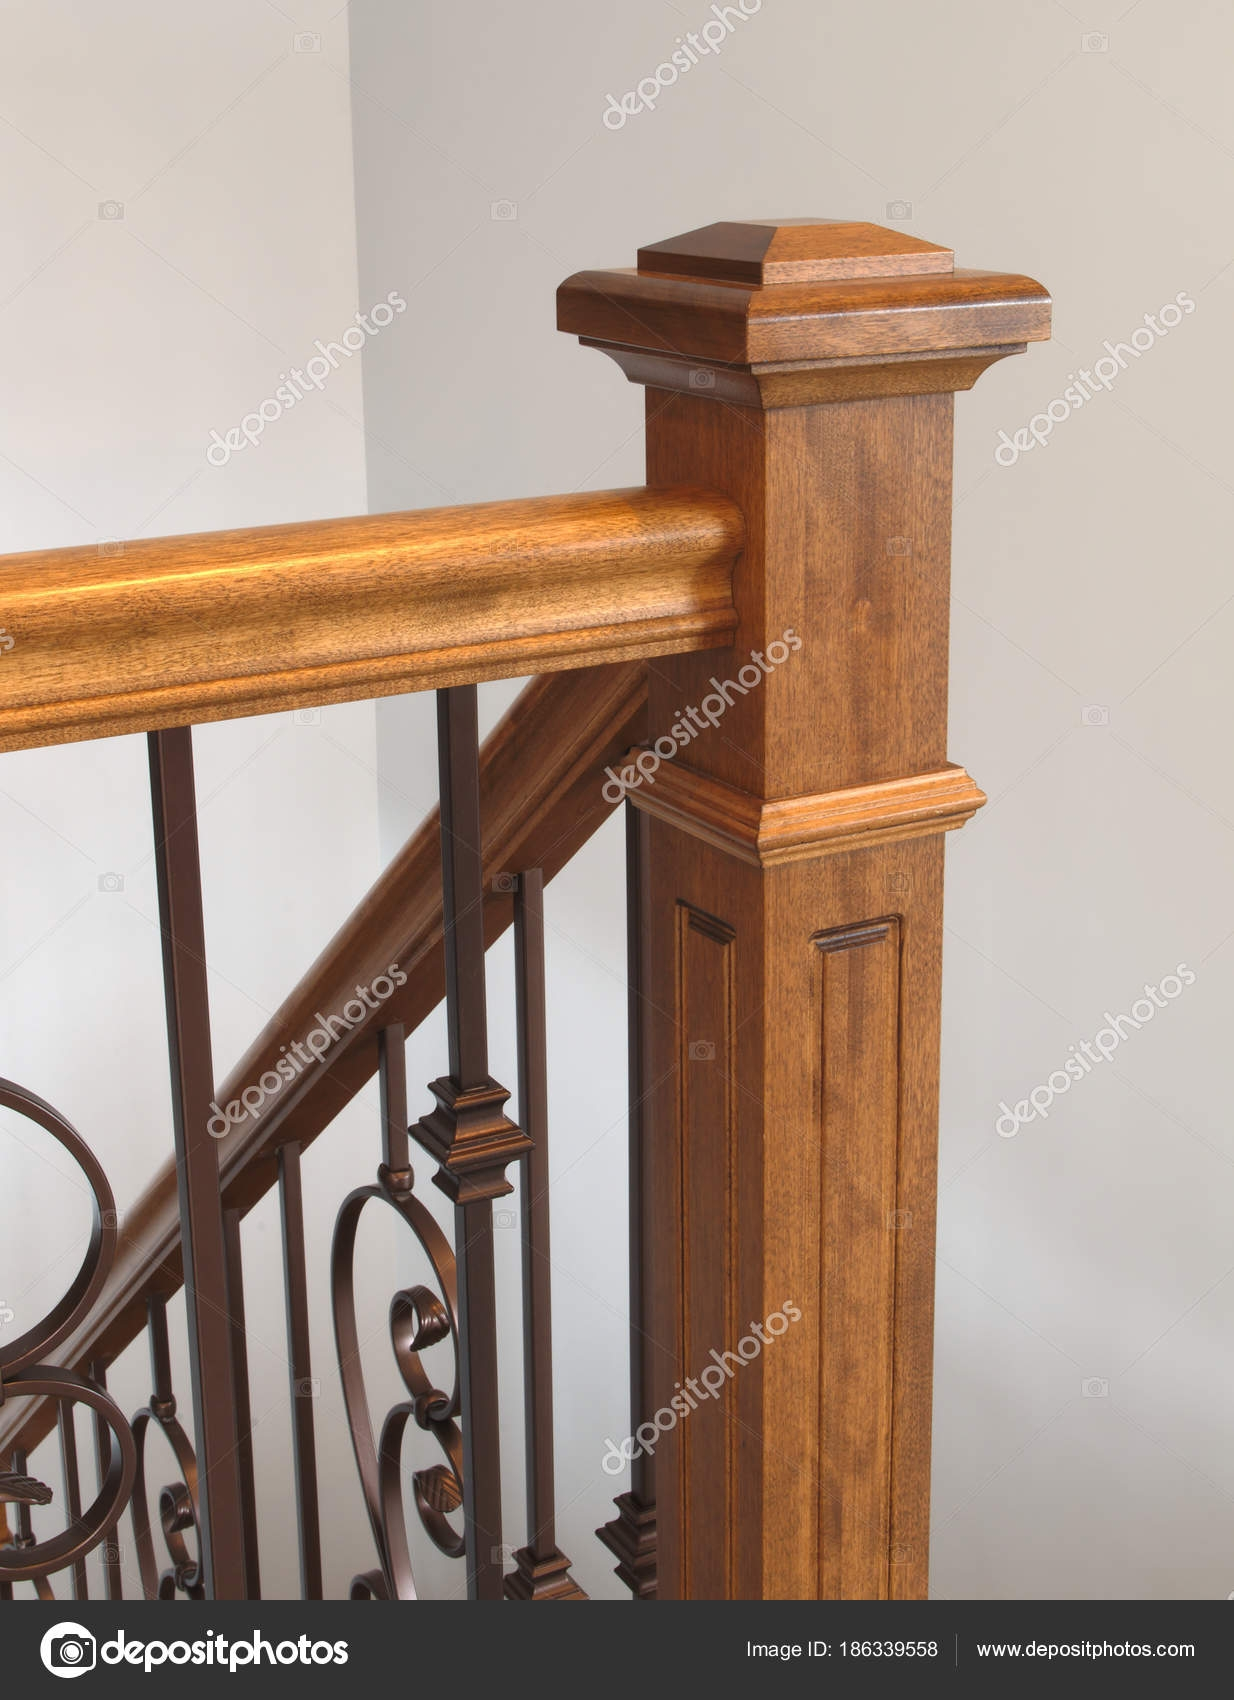 Pictures Wood Handrails Wood Stairs Newel Handrail Staircase | Interior Handrails For Steps | Aircraft Cable | Wrought Iron | Western | Closed Staircase | Stair Bannister